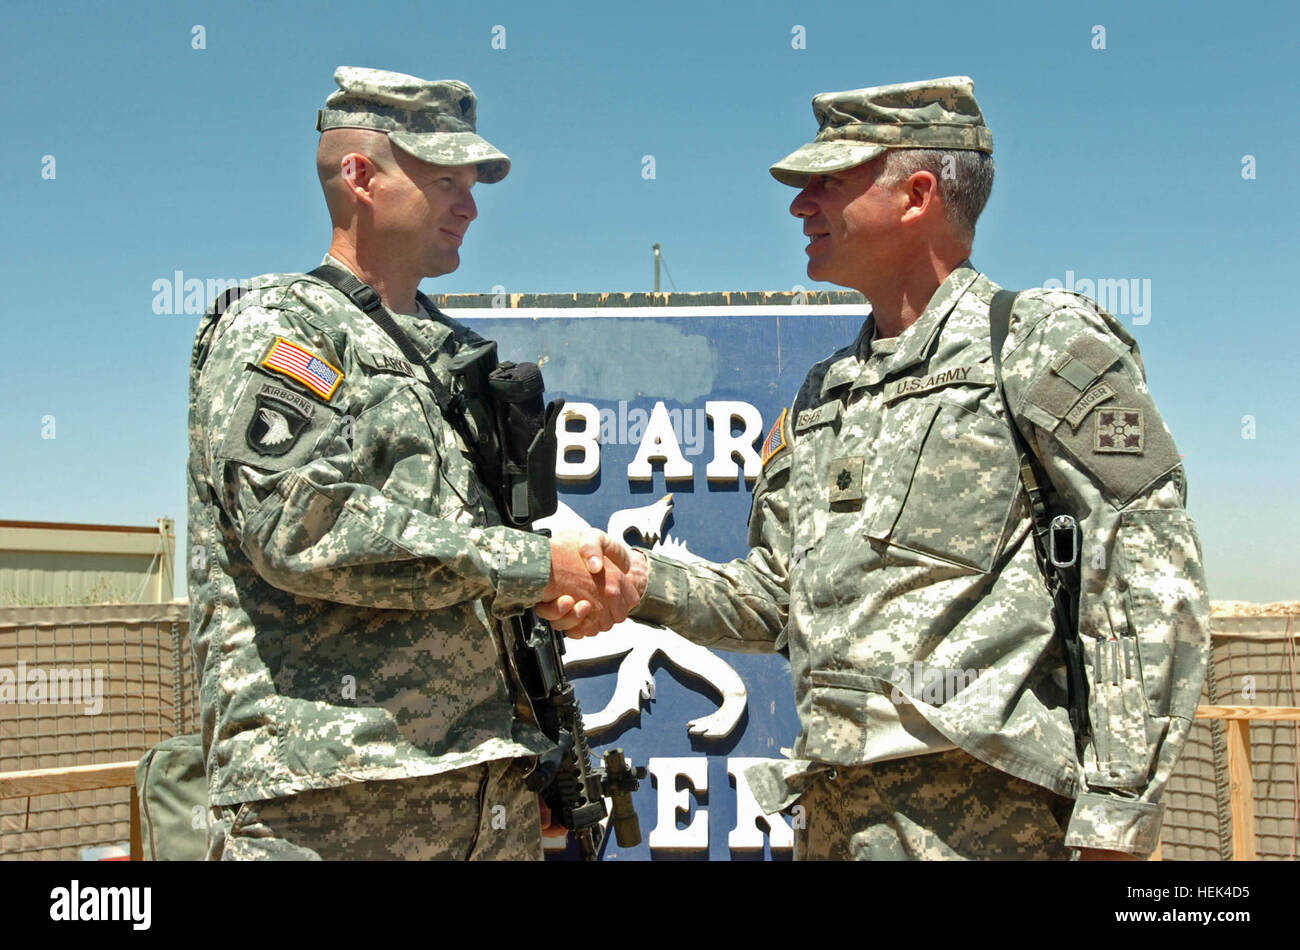 BAQUABAH, Iraq (May 29, 2006) -- Spc. John Larkin (left) receives a unit coin and congratulations from Lt. Col. - Stock Image